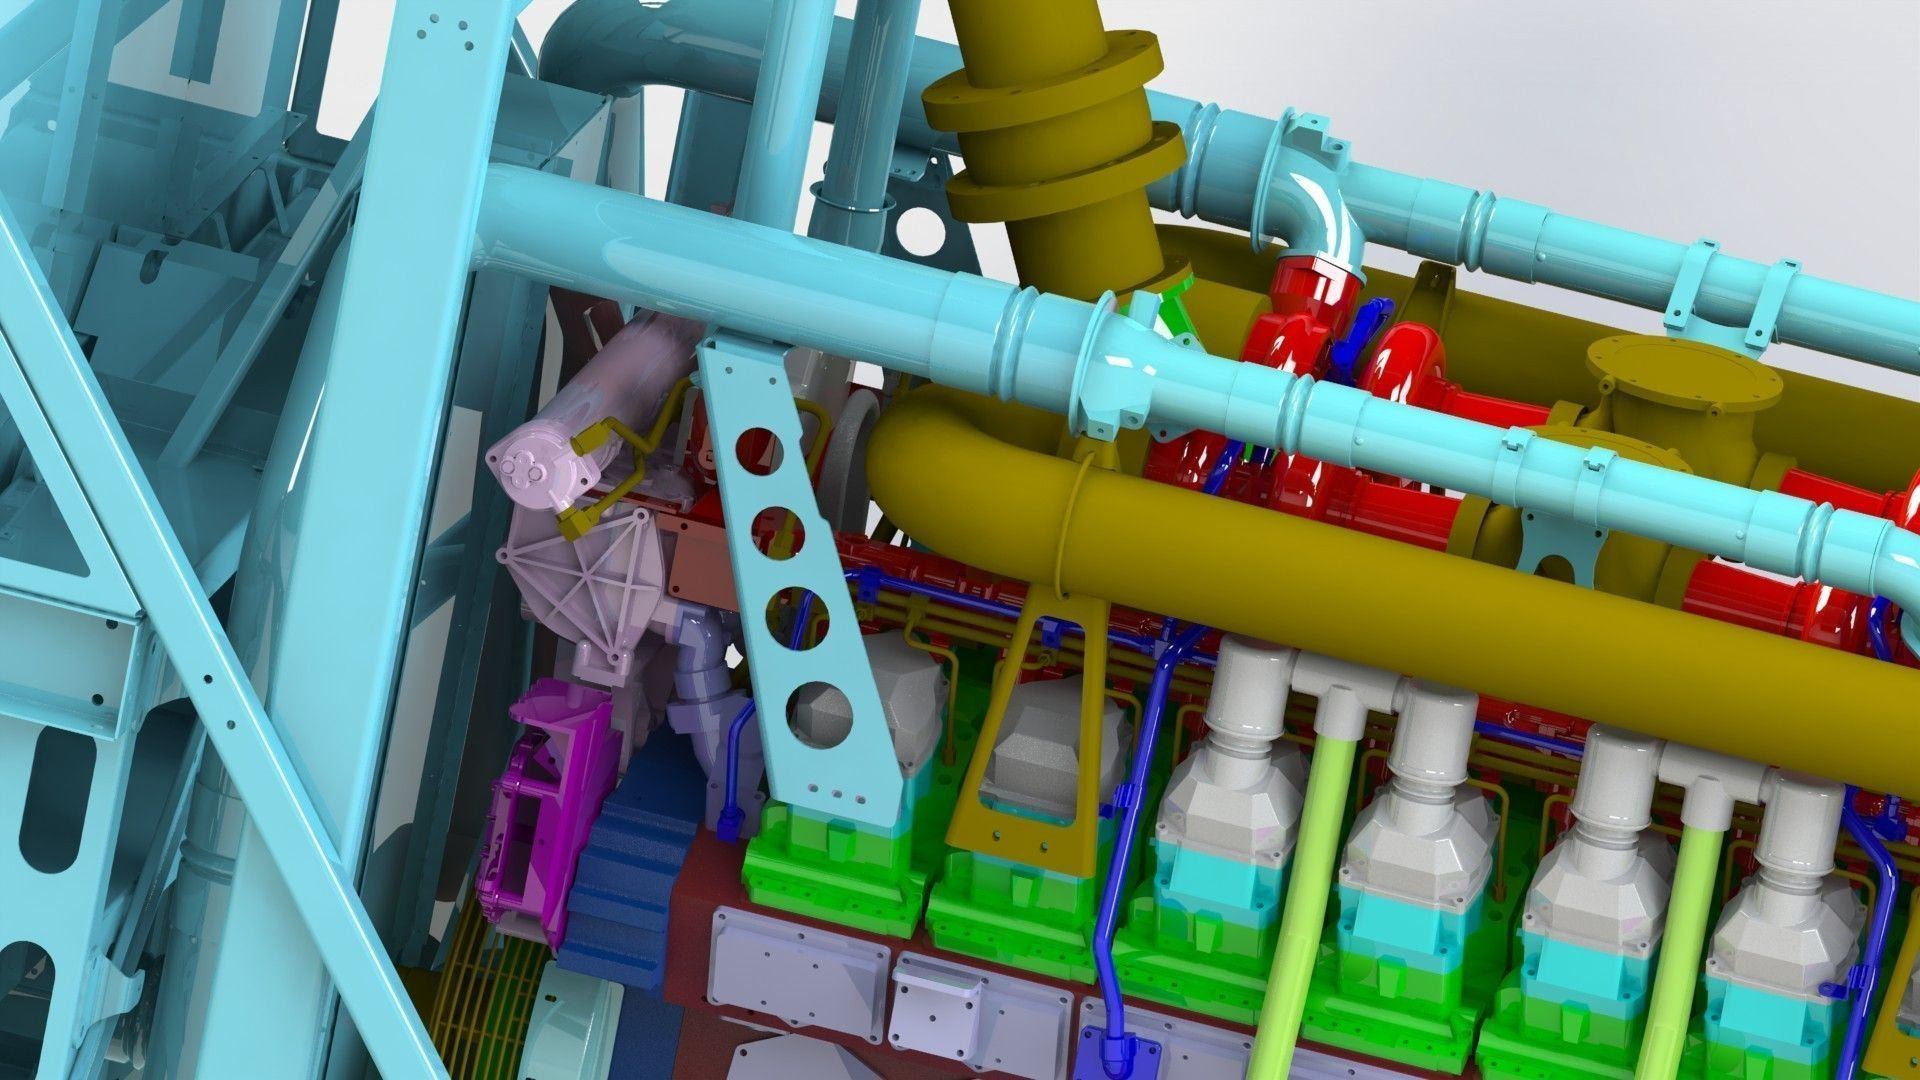 Giant generator sel engine 3D model